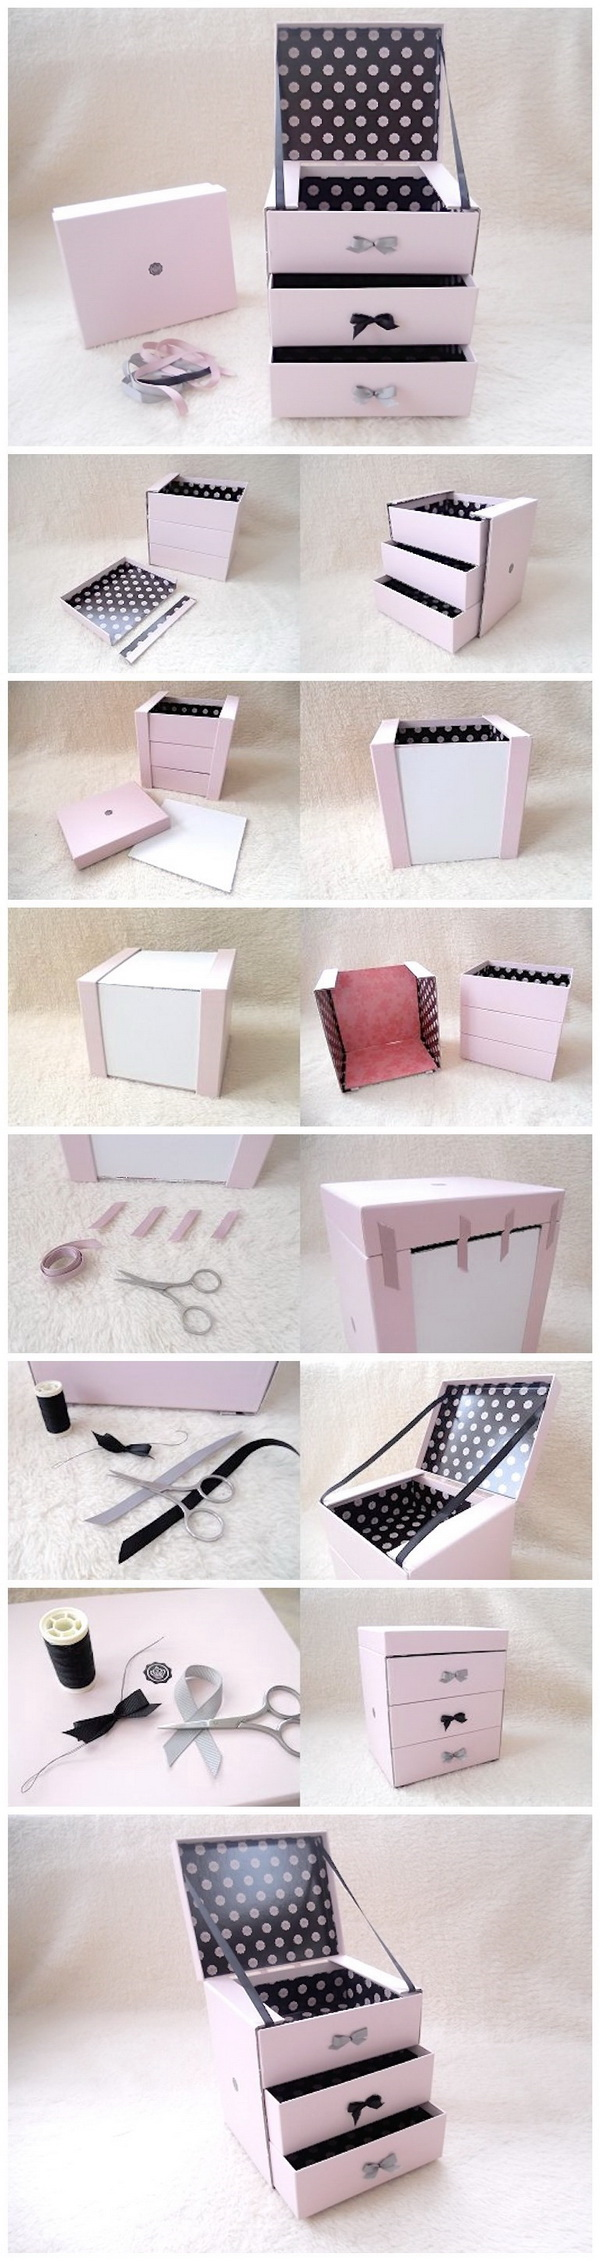 Diy crafts for teenage girls step by step for Awesome diy projects